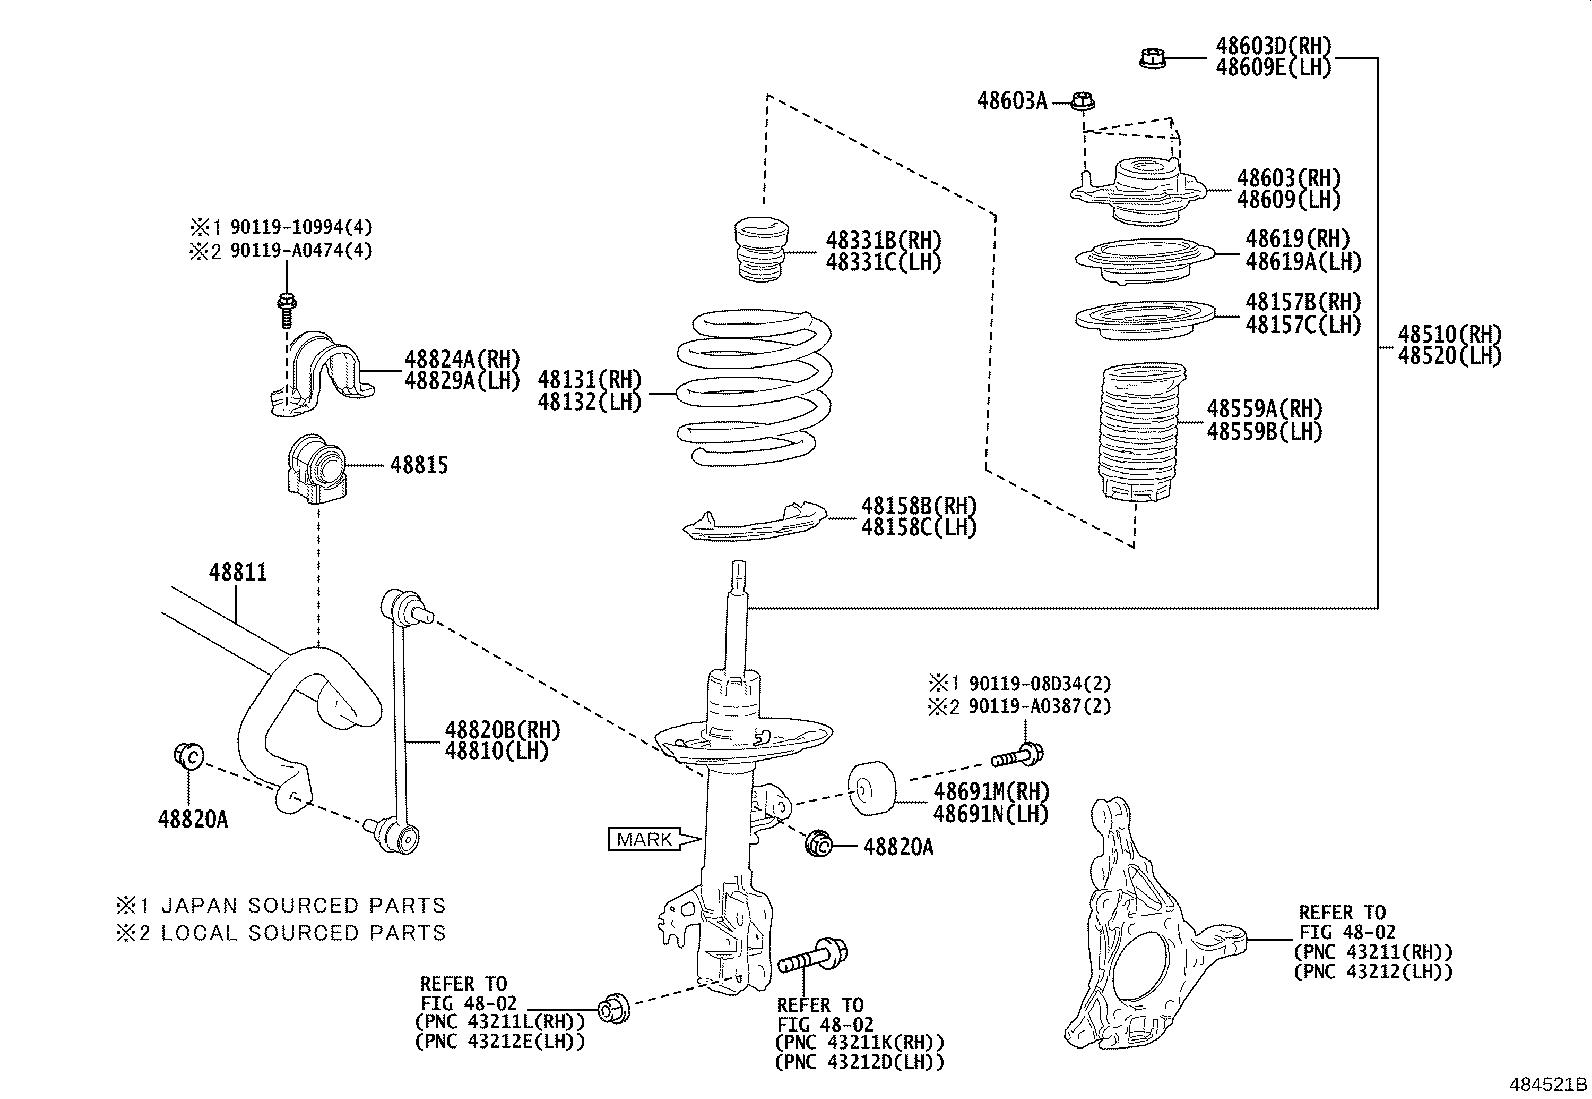 Toyota Camry Spring. Front coil, left; front coil, right